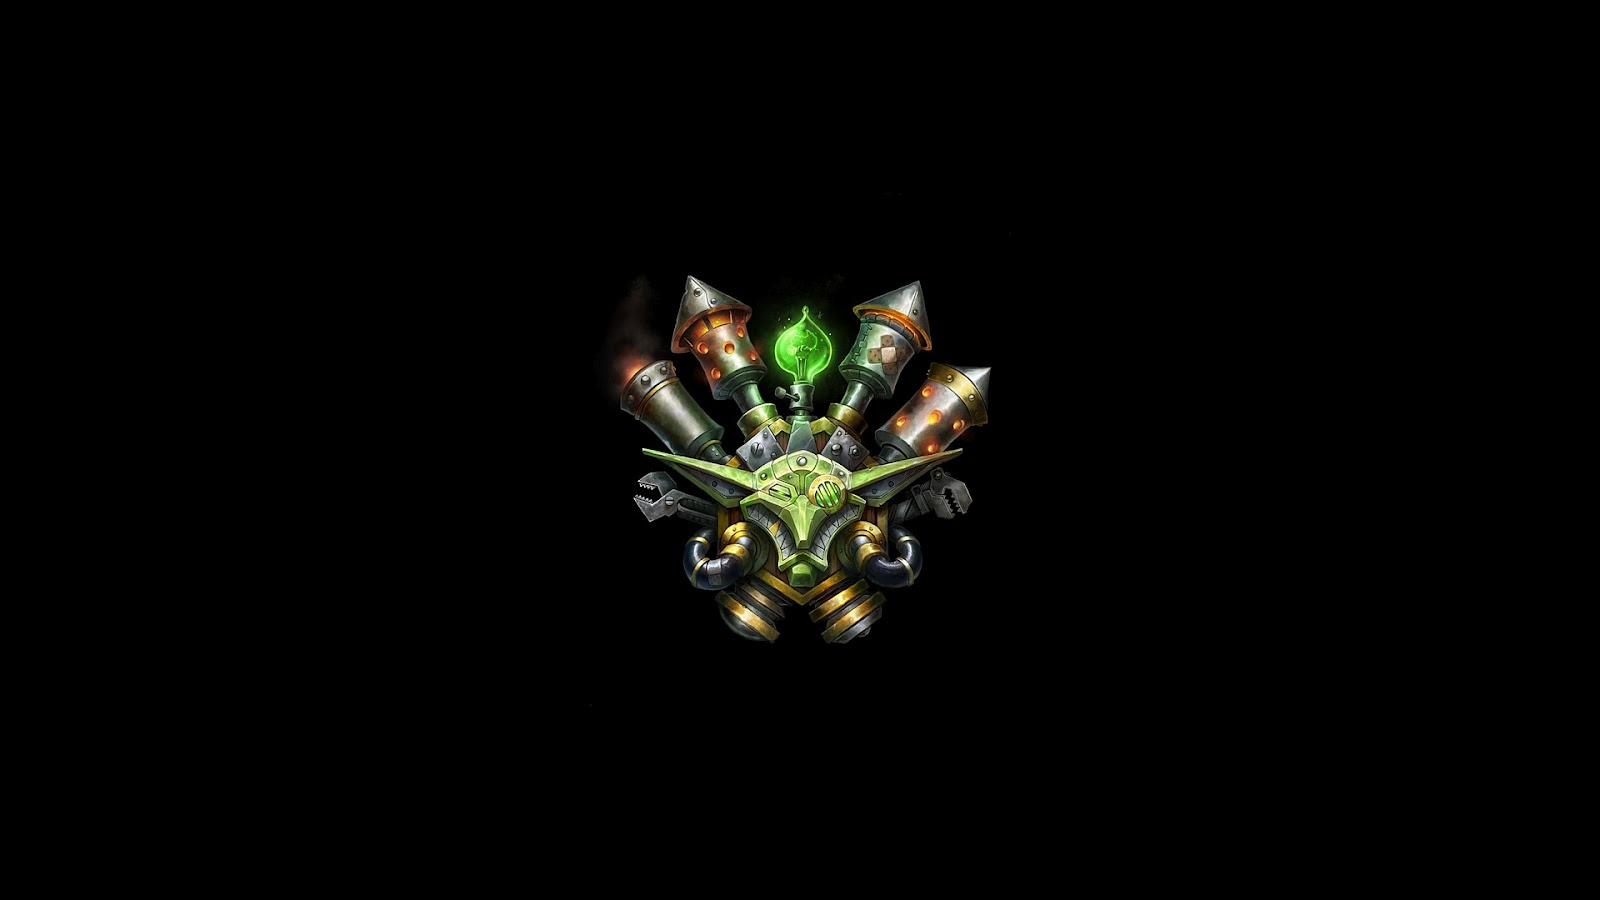 http://2.bp.blogspot.com/-yuWfYR9V0rs/UA6t09PhSPI/AAAAAAAAA9c/pUQueQwDoVA/s1600/World+of+Warcraft+wallpapers++goblin_crest_w1.jpg